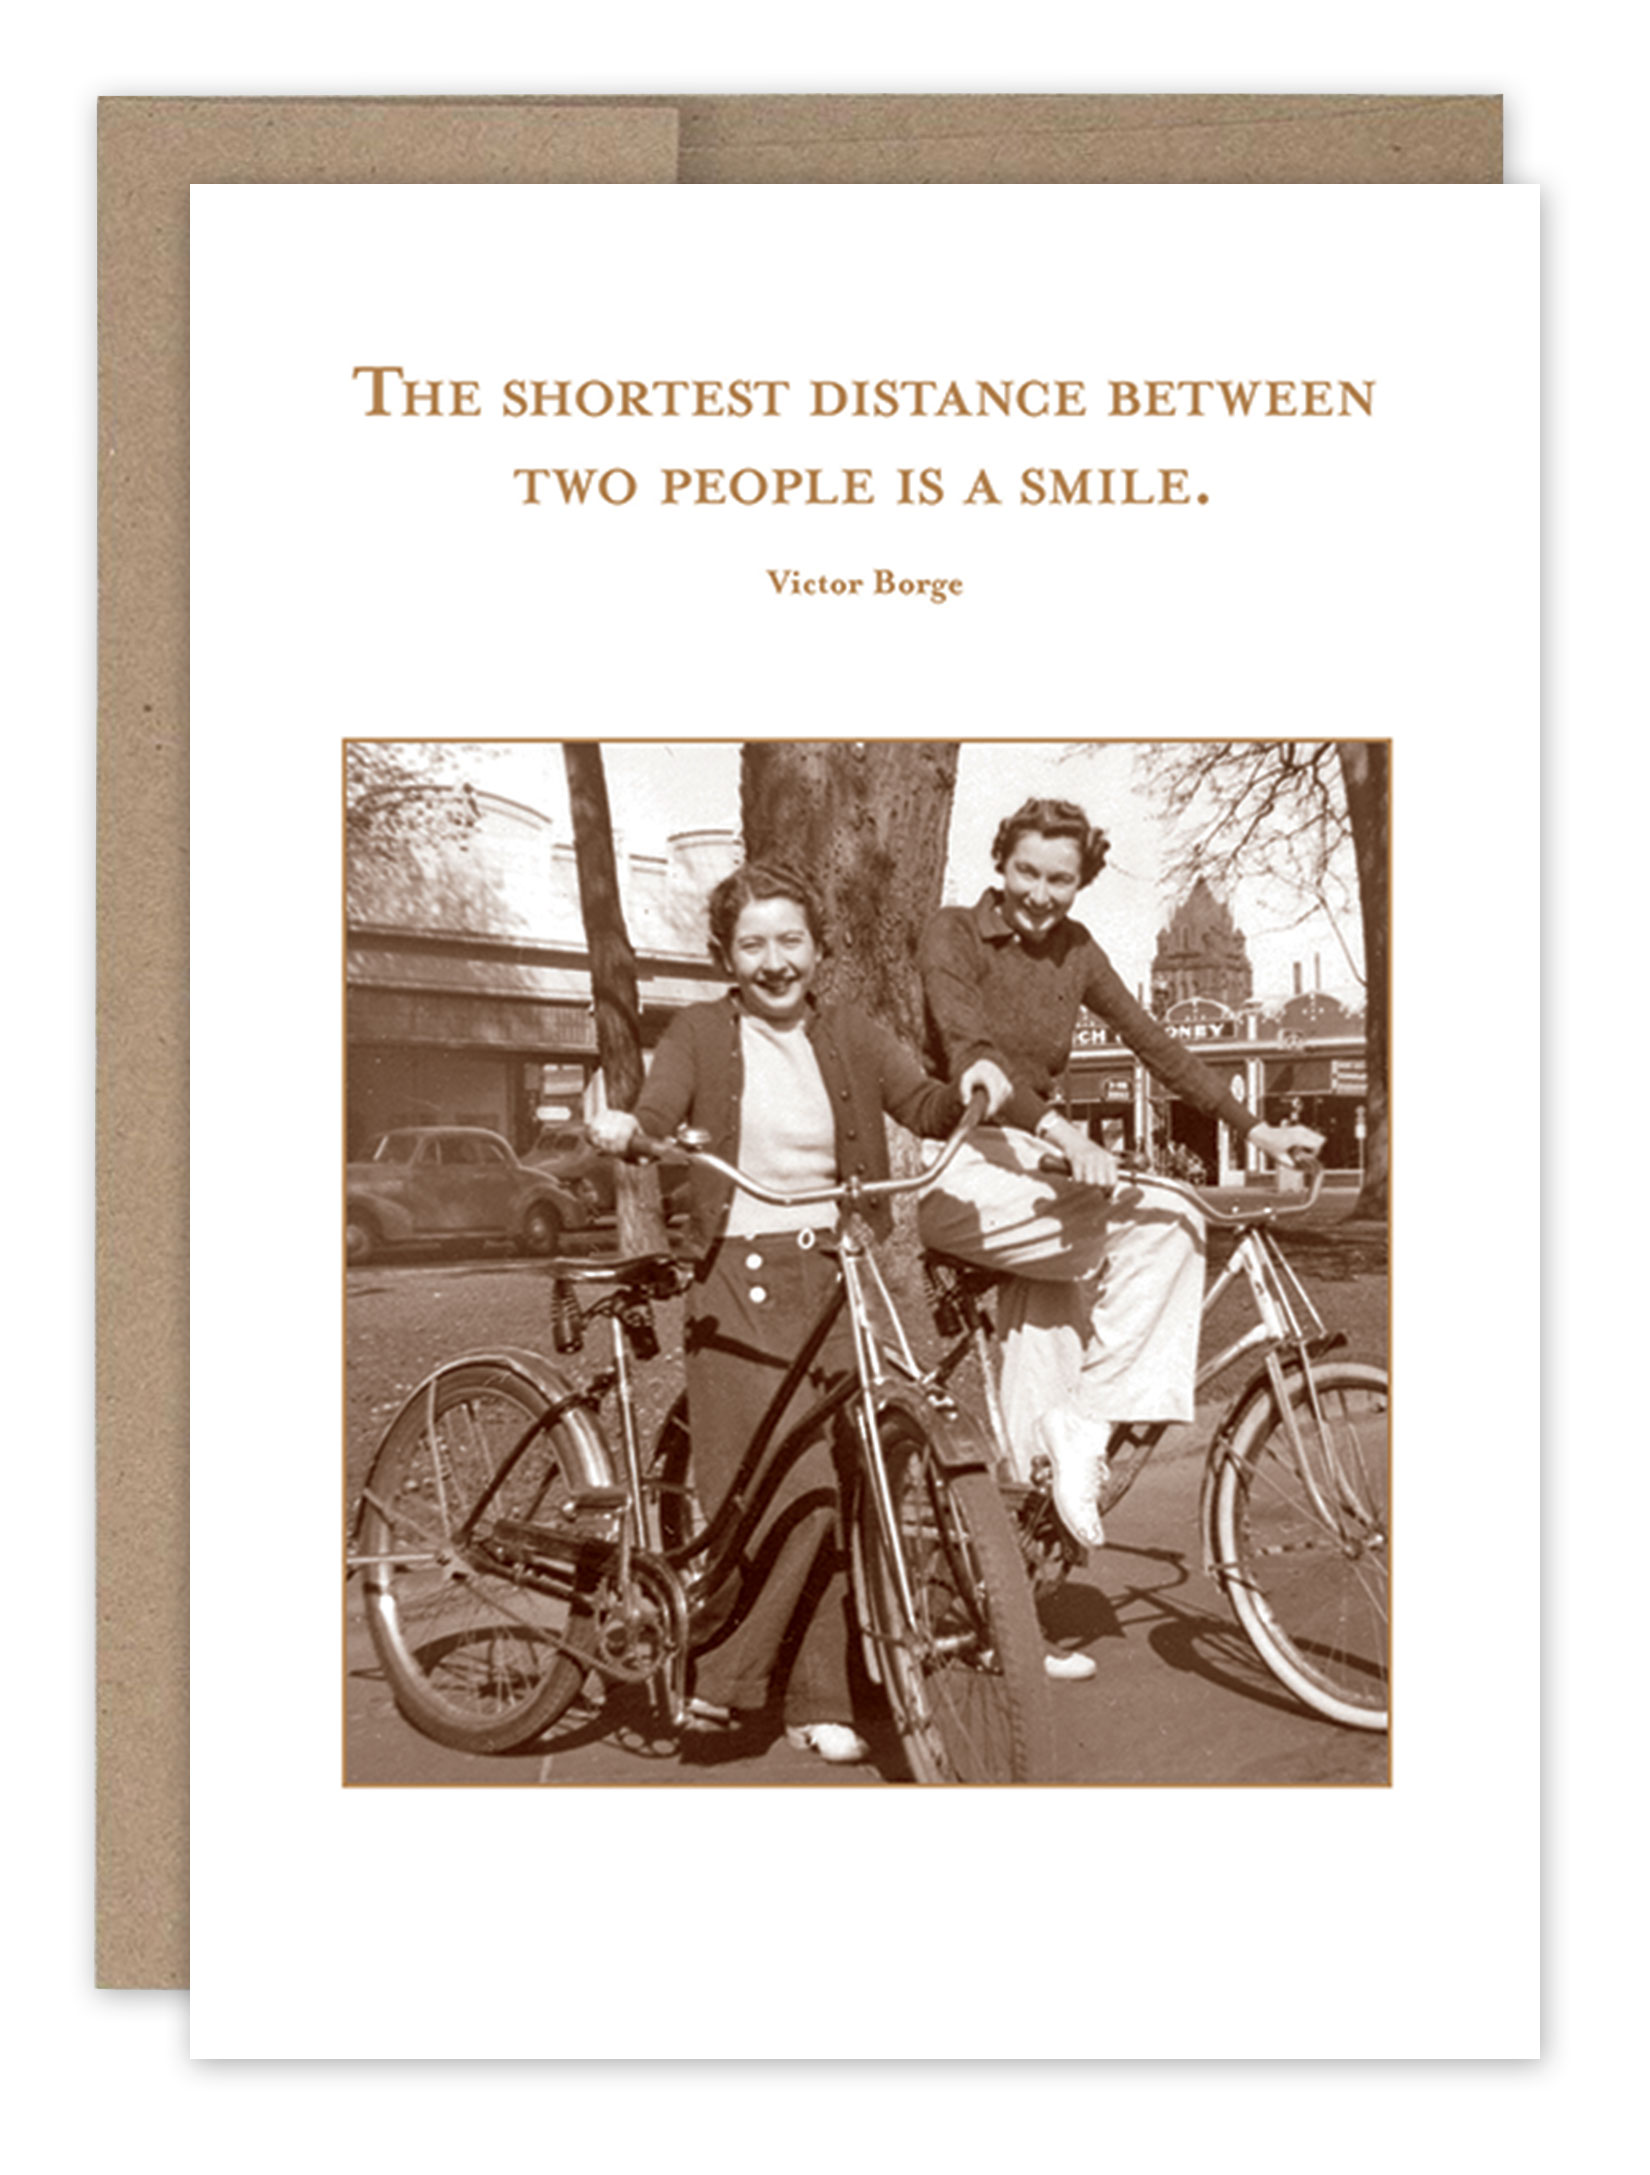 THE SHORTEST DISTANCE